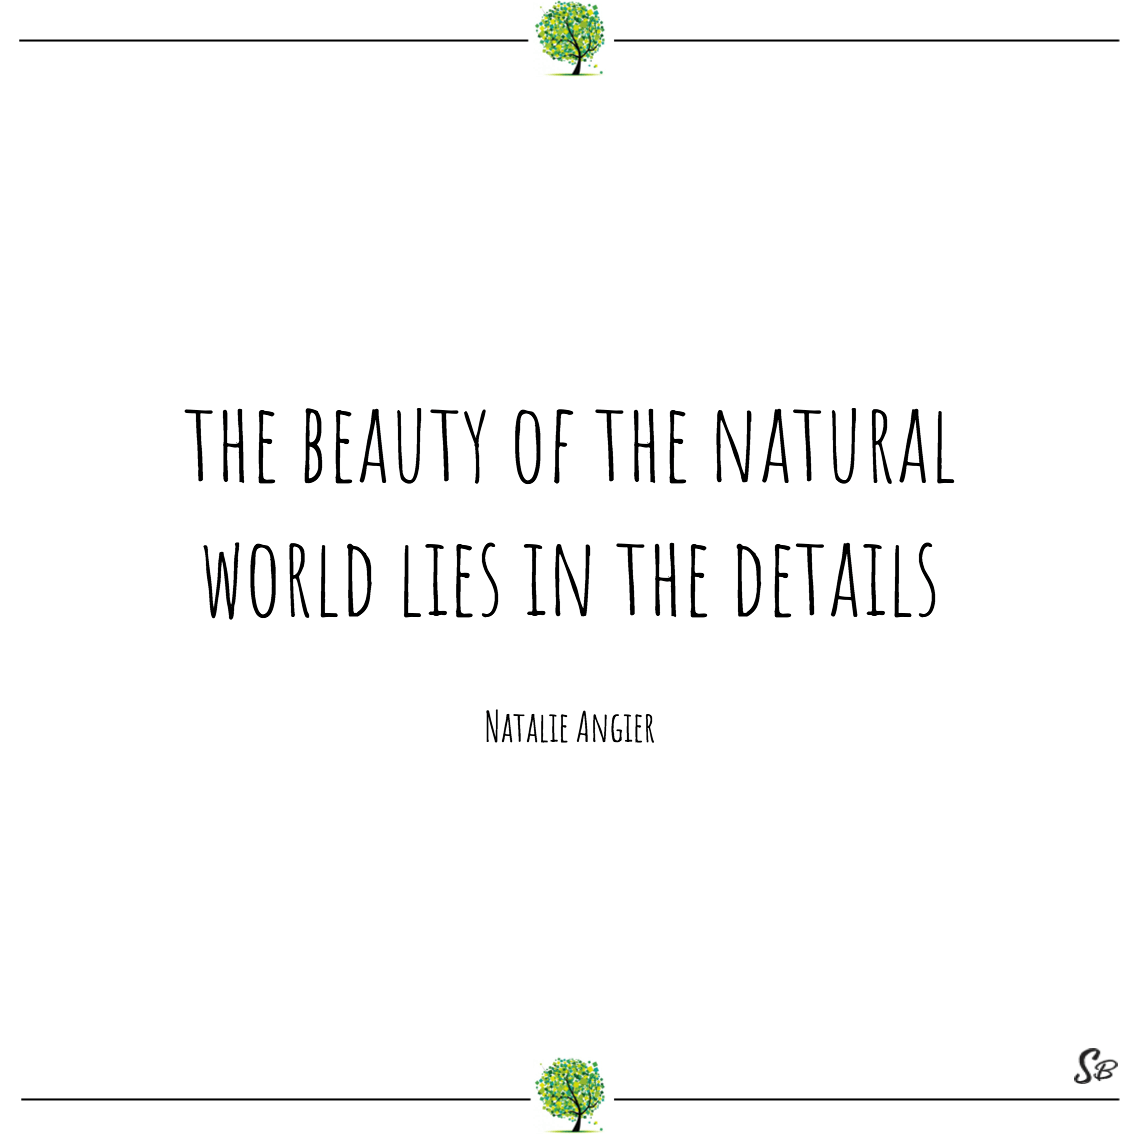 The beauty of the natural world lies in the details natalie angier